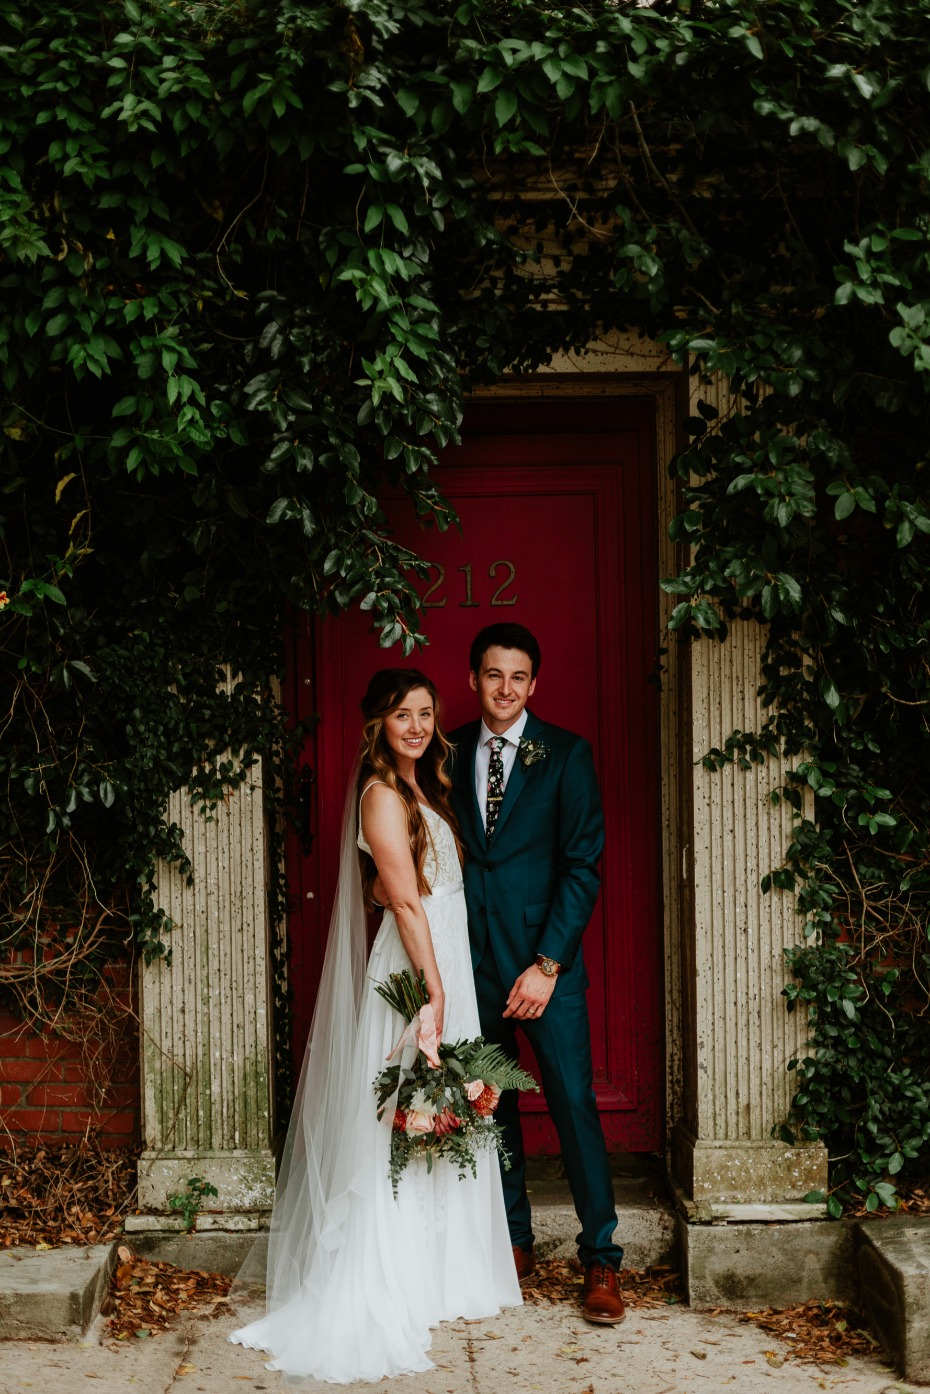 An Urban Garden Wedding With DIY Blooms From Fifty Flowers